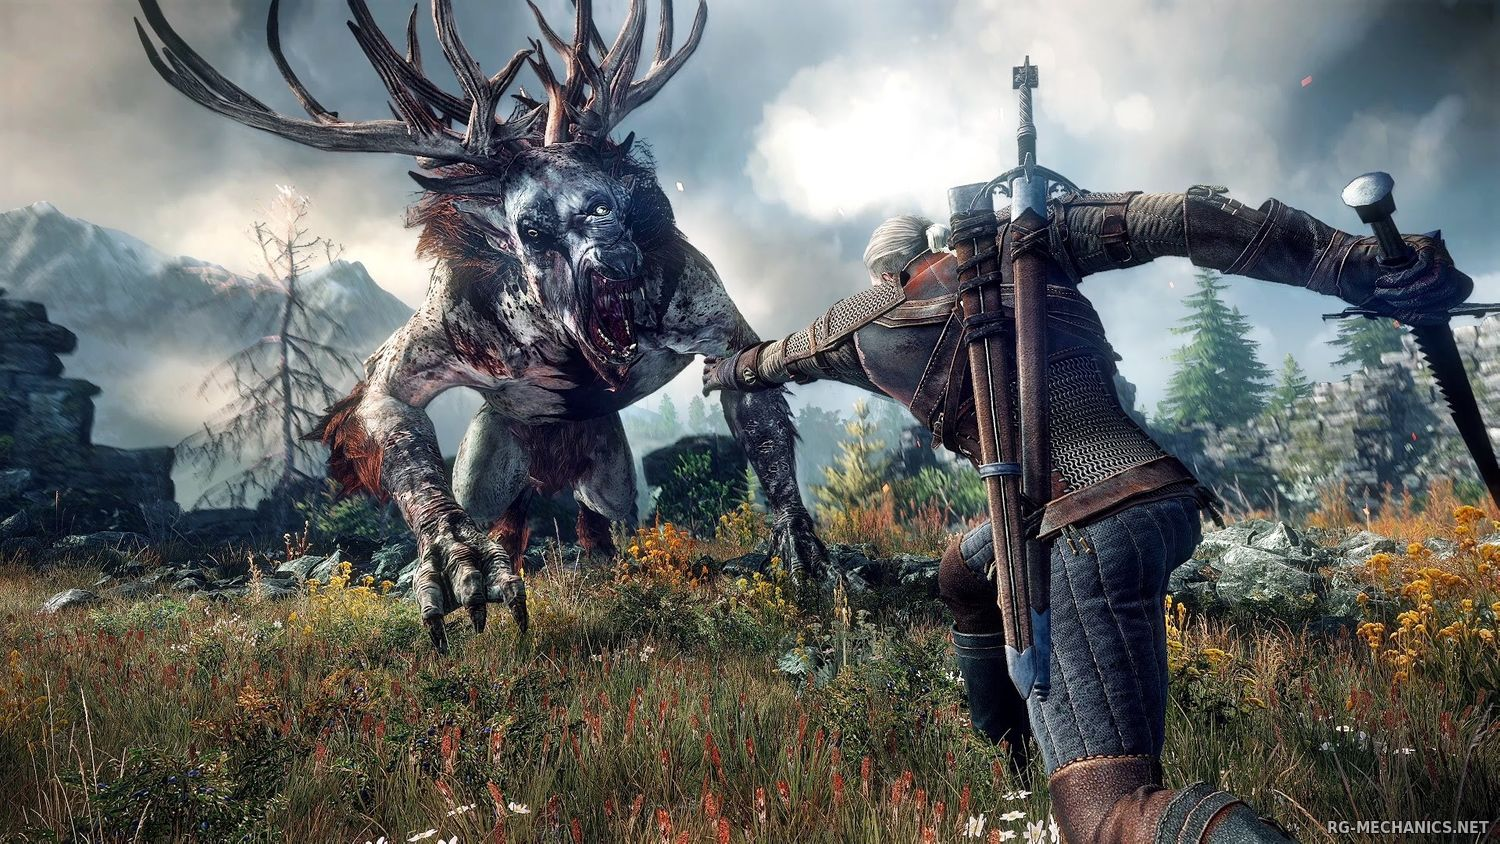 Скриншот к игре The Witcher 3: Wild Hunt + The Witcher 3 HD Reworked Project